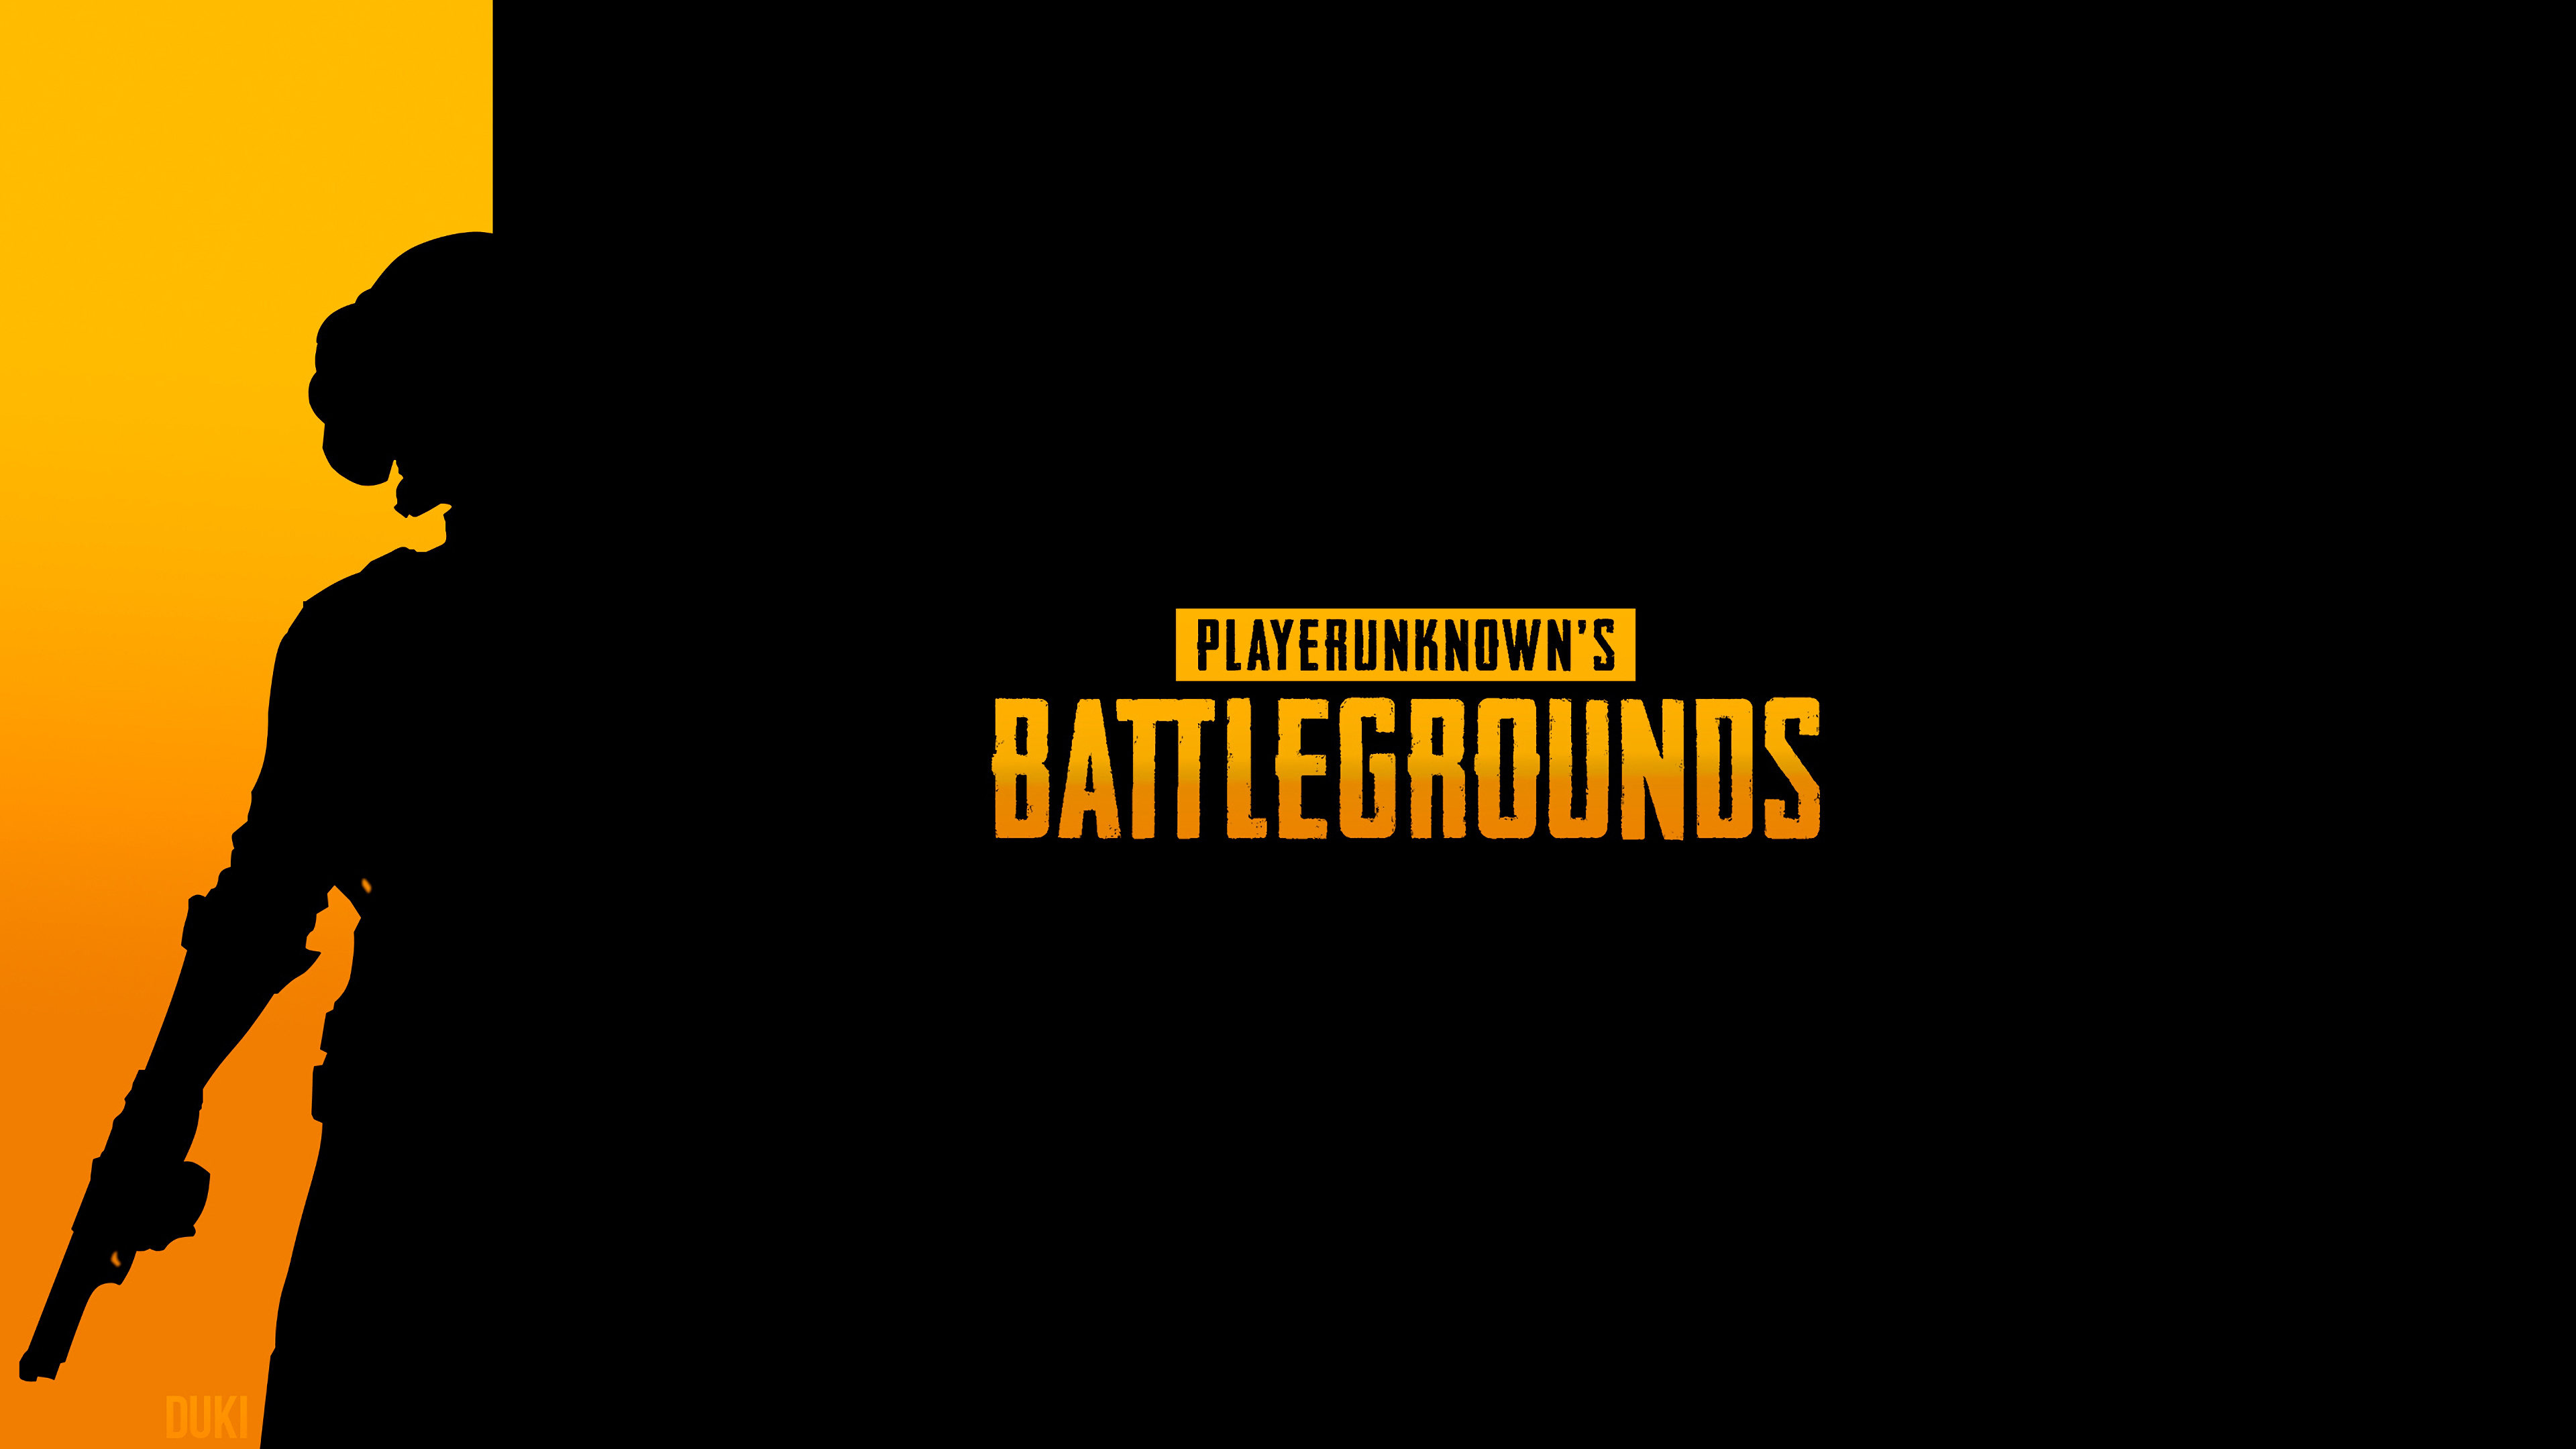 Fondos de pantalla PlayerUnknown's Battlegrounds Logo